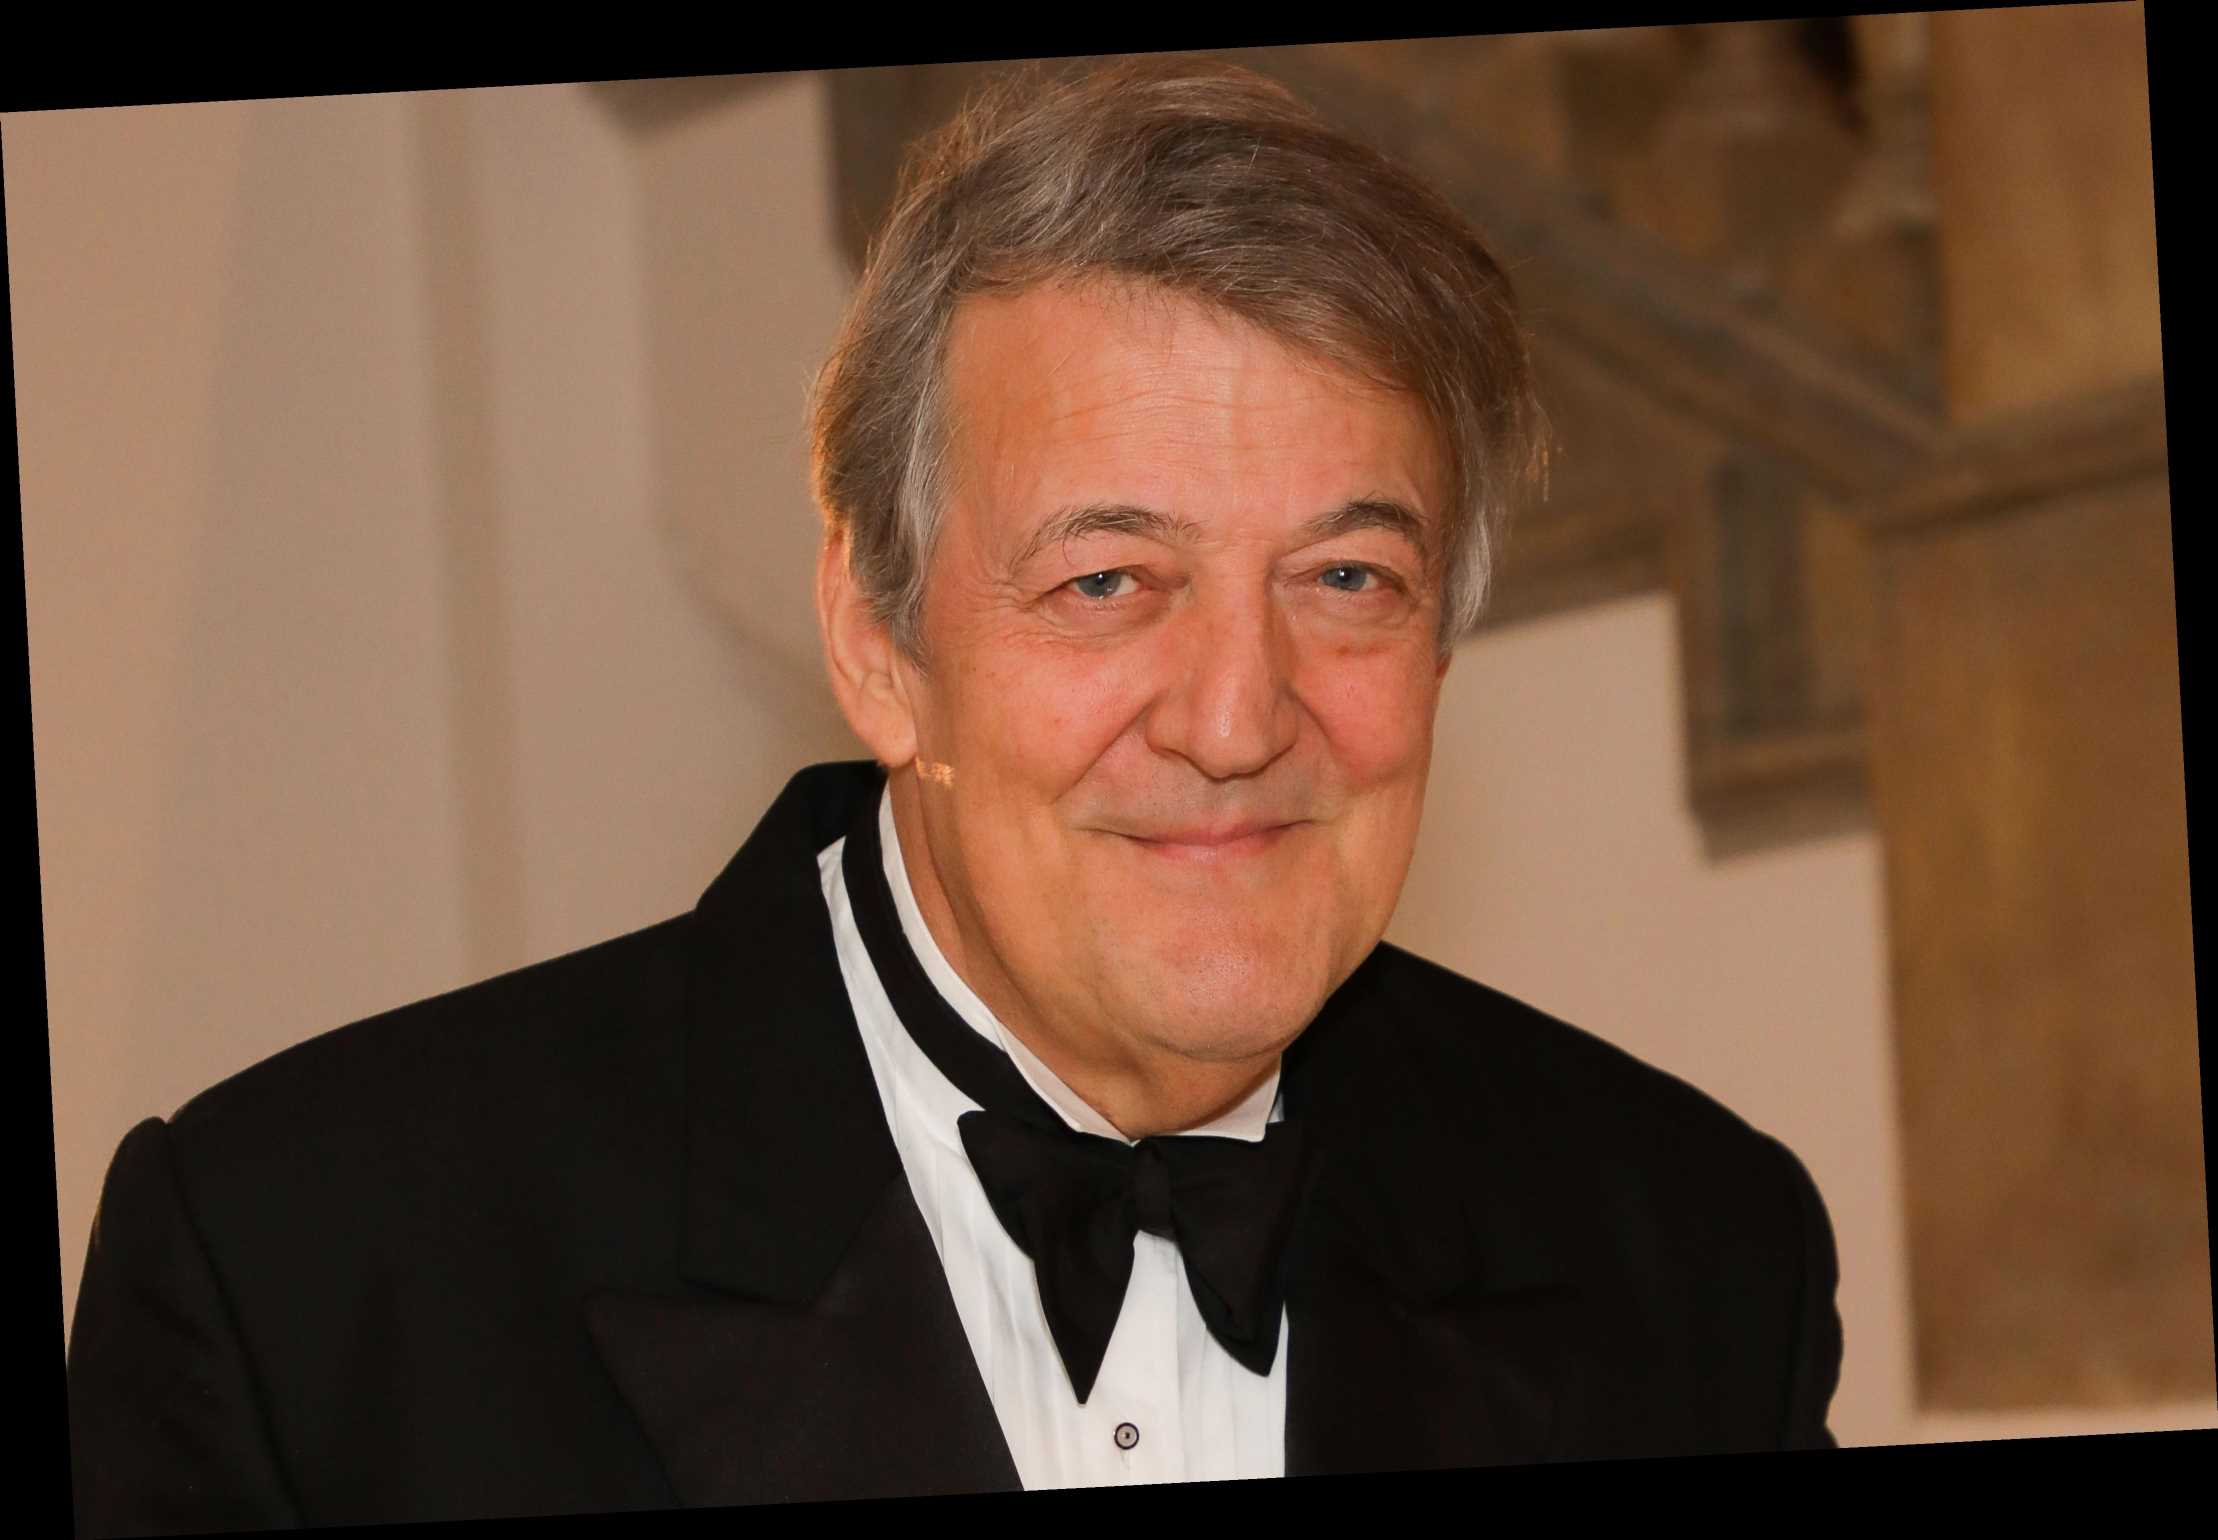 Stephen Fry urges men not to put off prostate cancer tests during pandemic